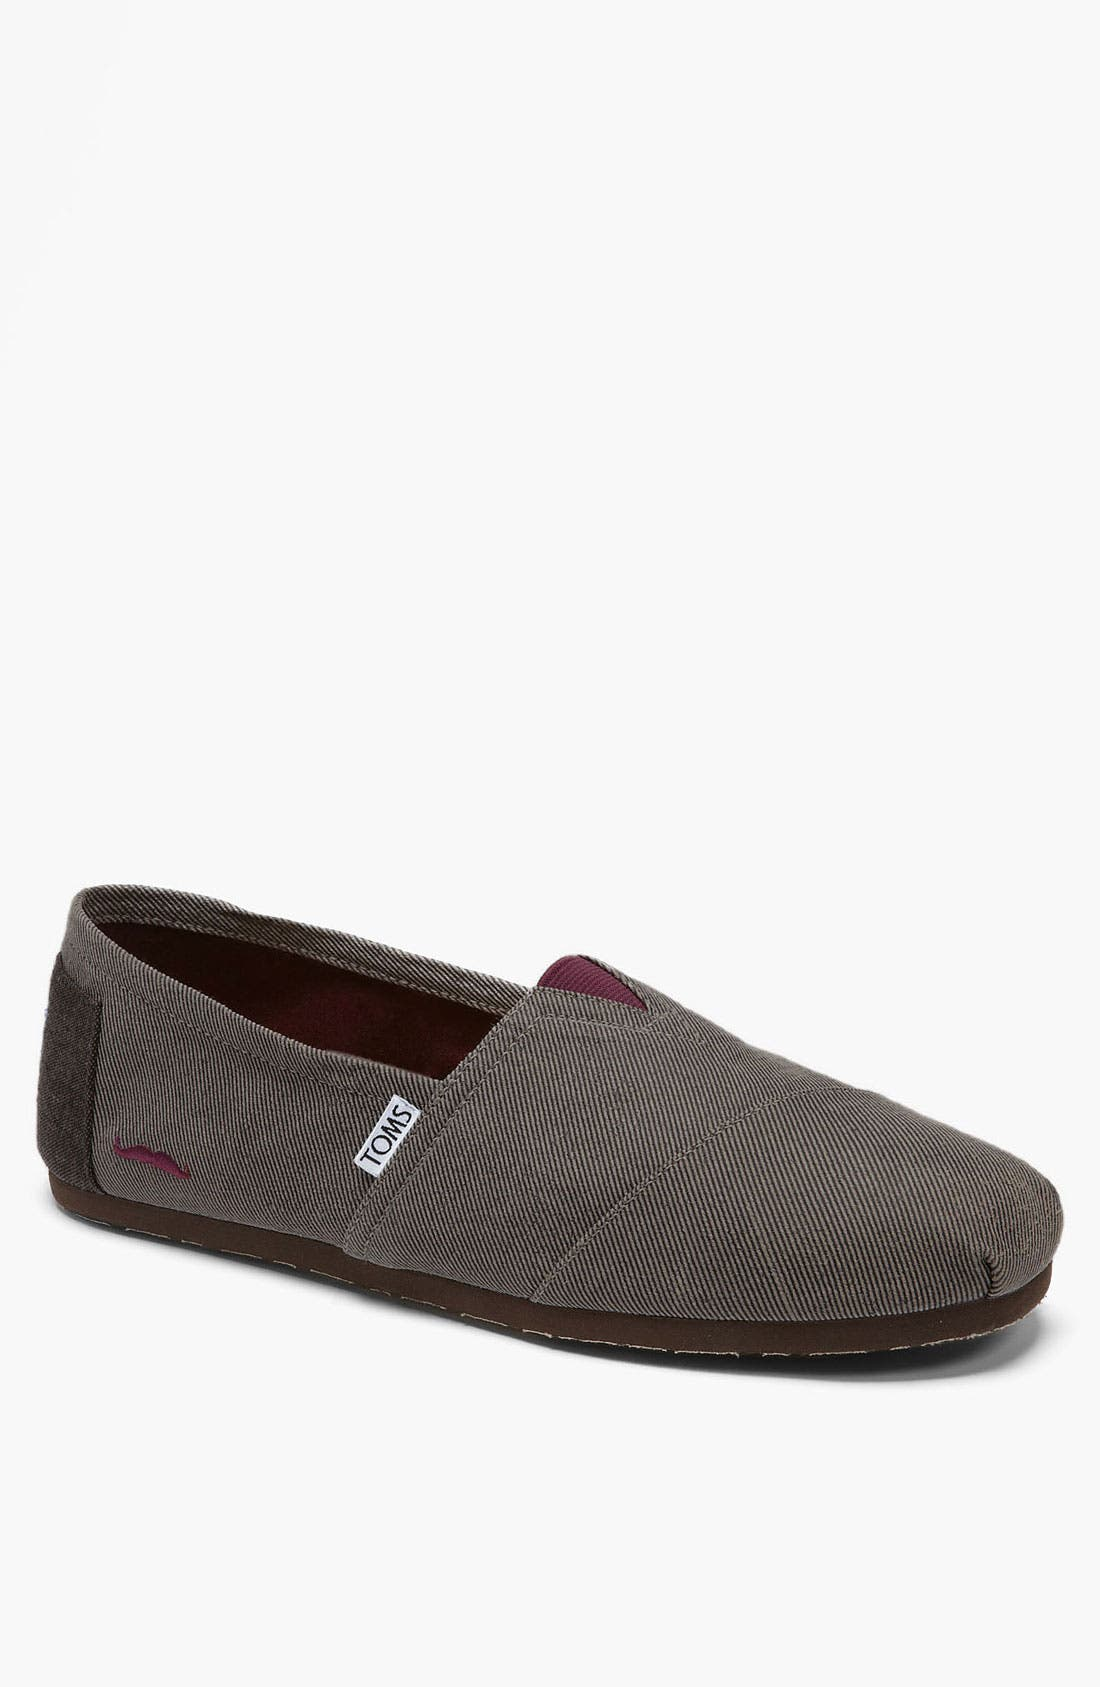 'Classic' Twill Slip-On, Main, color, 271